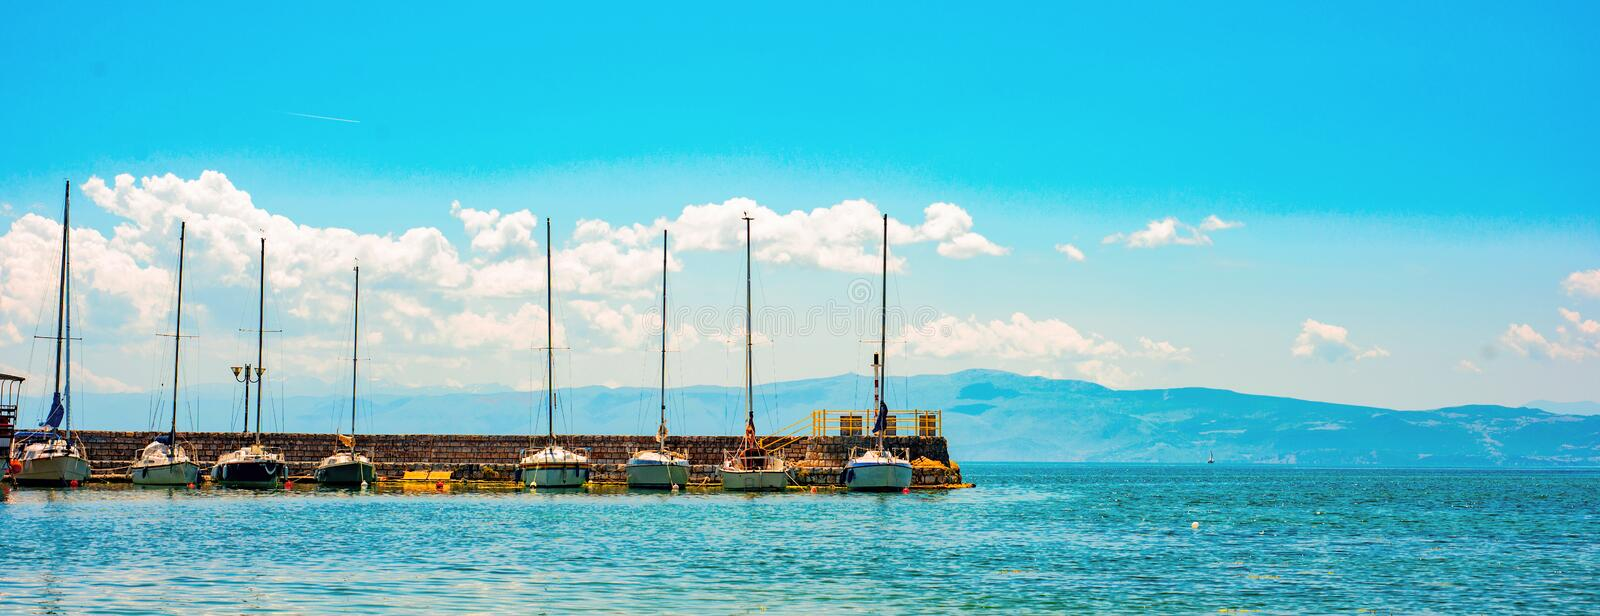 North macedonia. Ohrid. Long pier with different sailboats and mountines on background stock photography